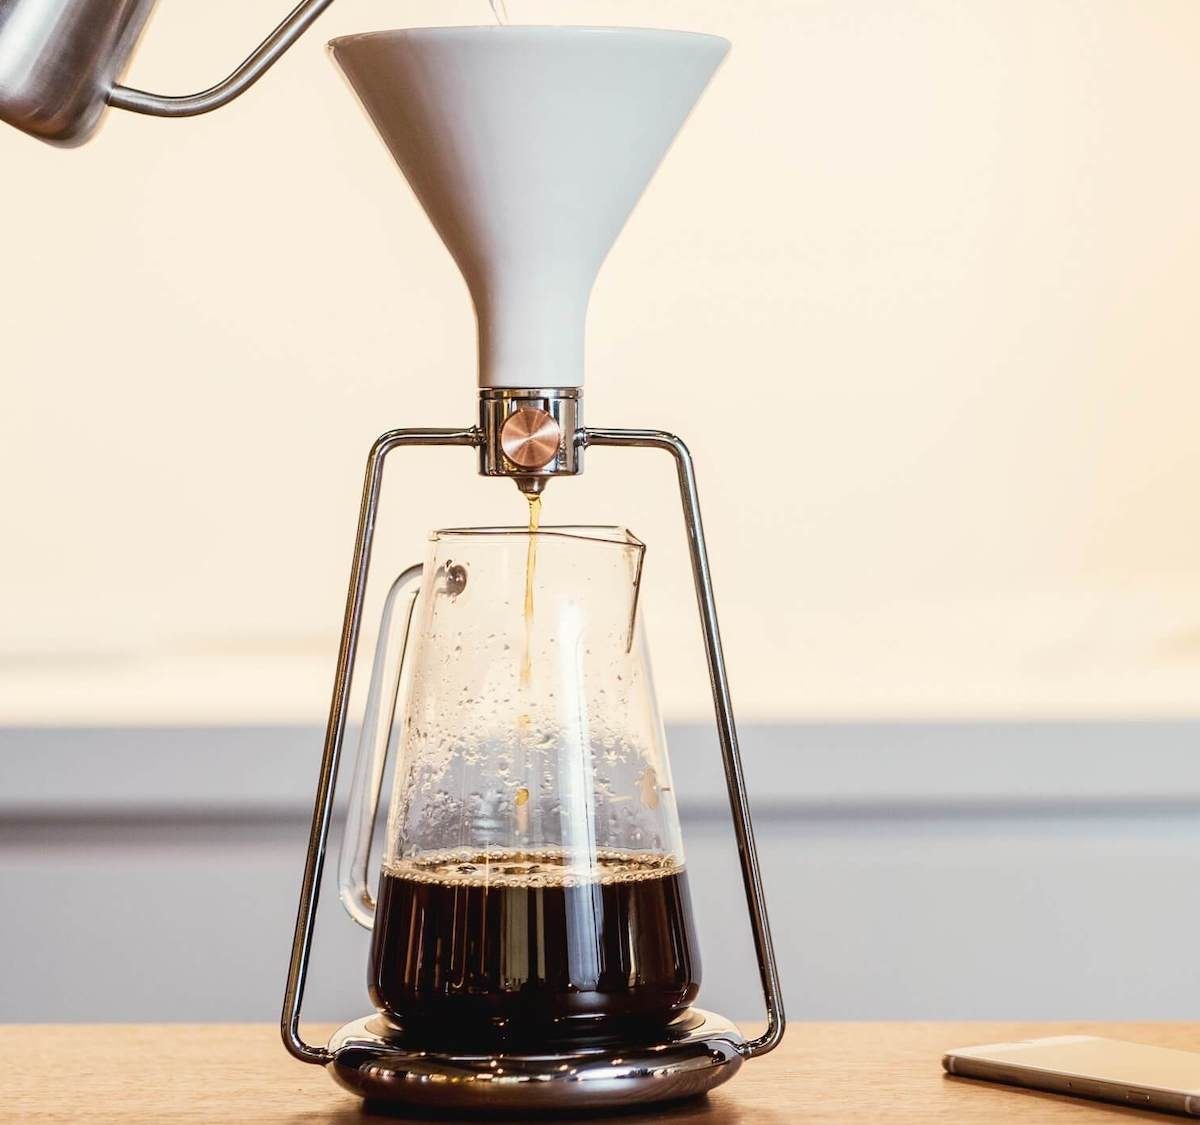 GOAT STORY GINA smart coffee instrument lets you brew in three deliciously different ways